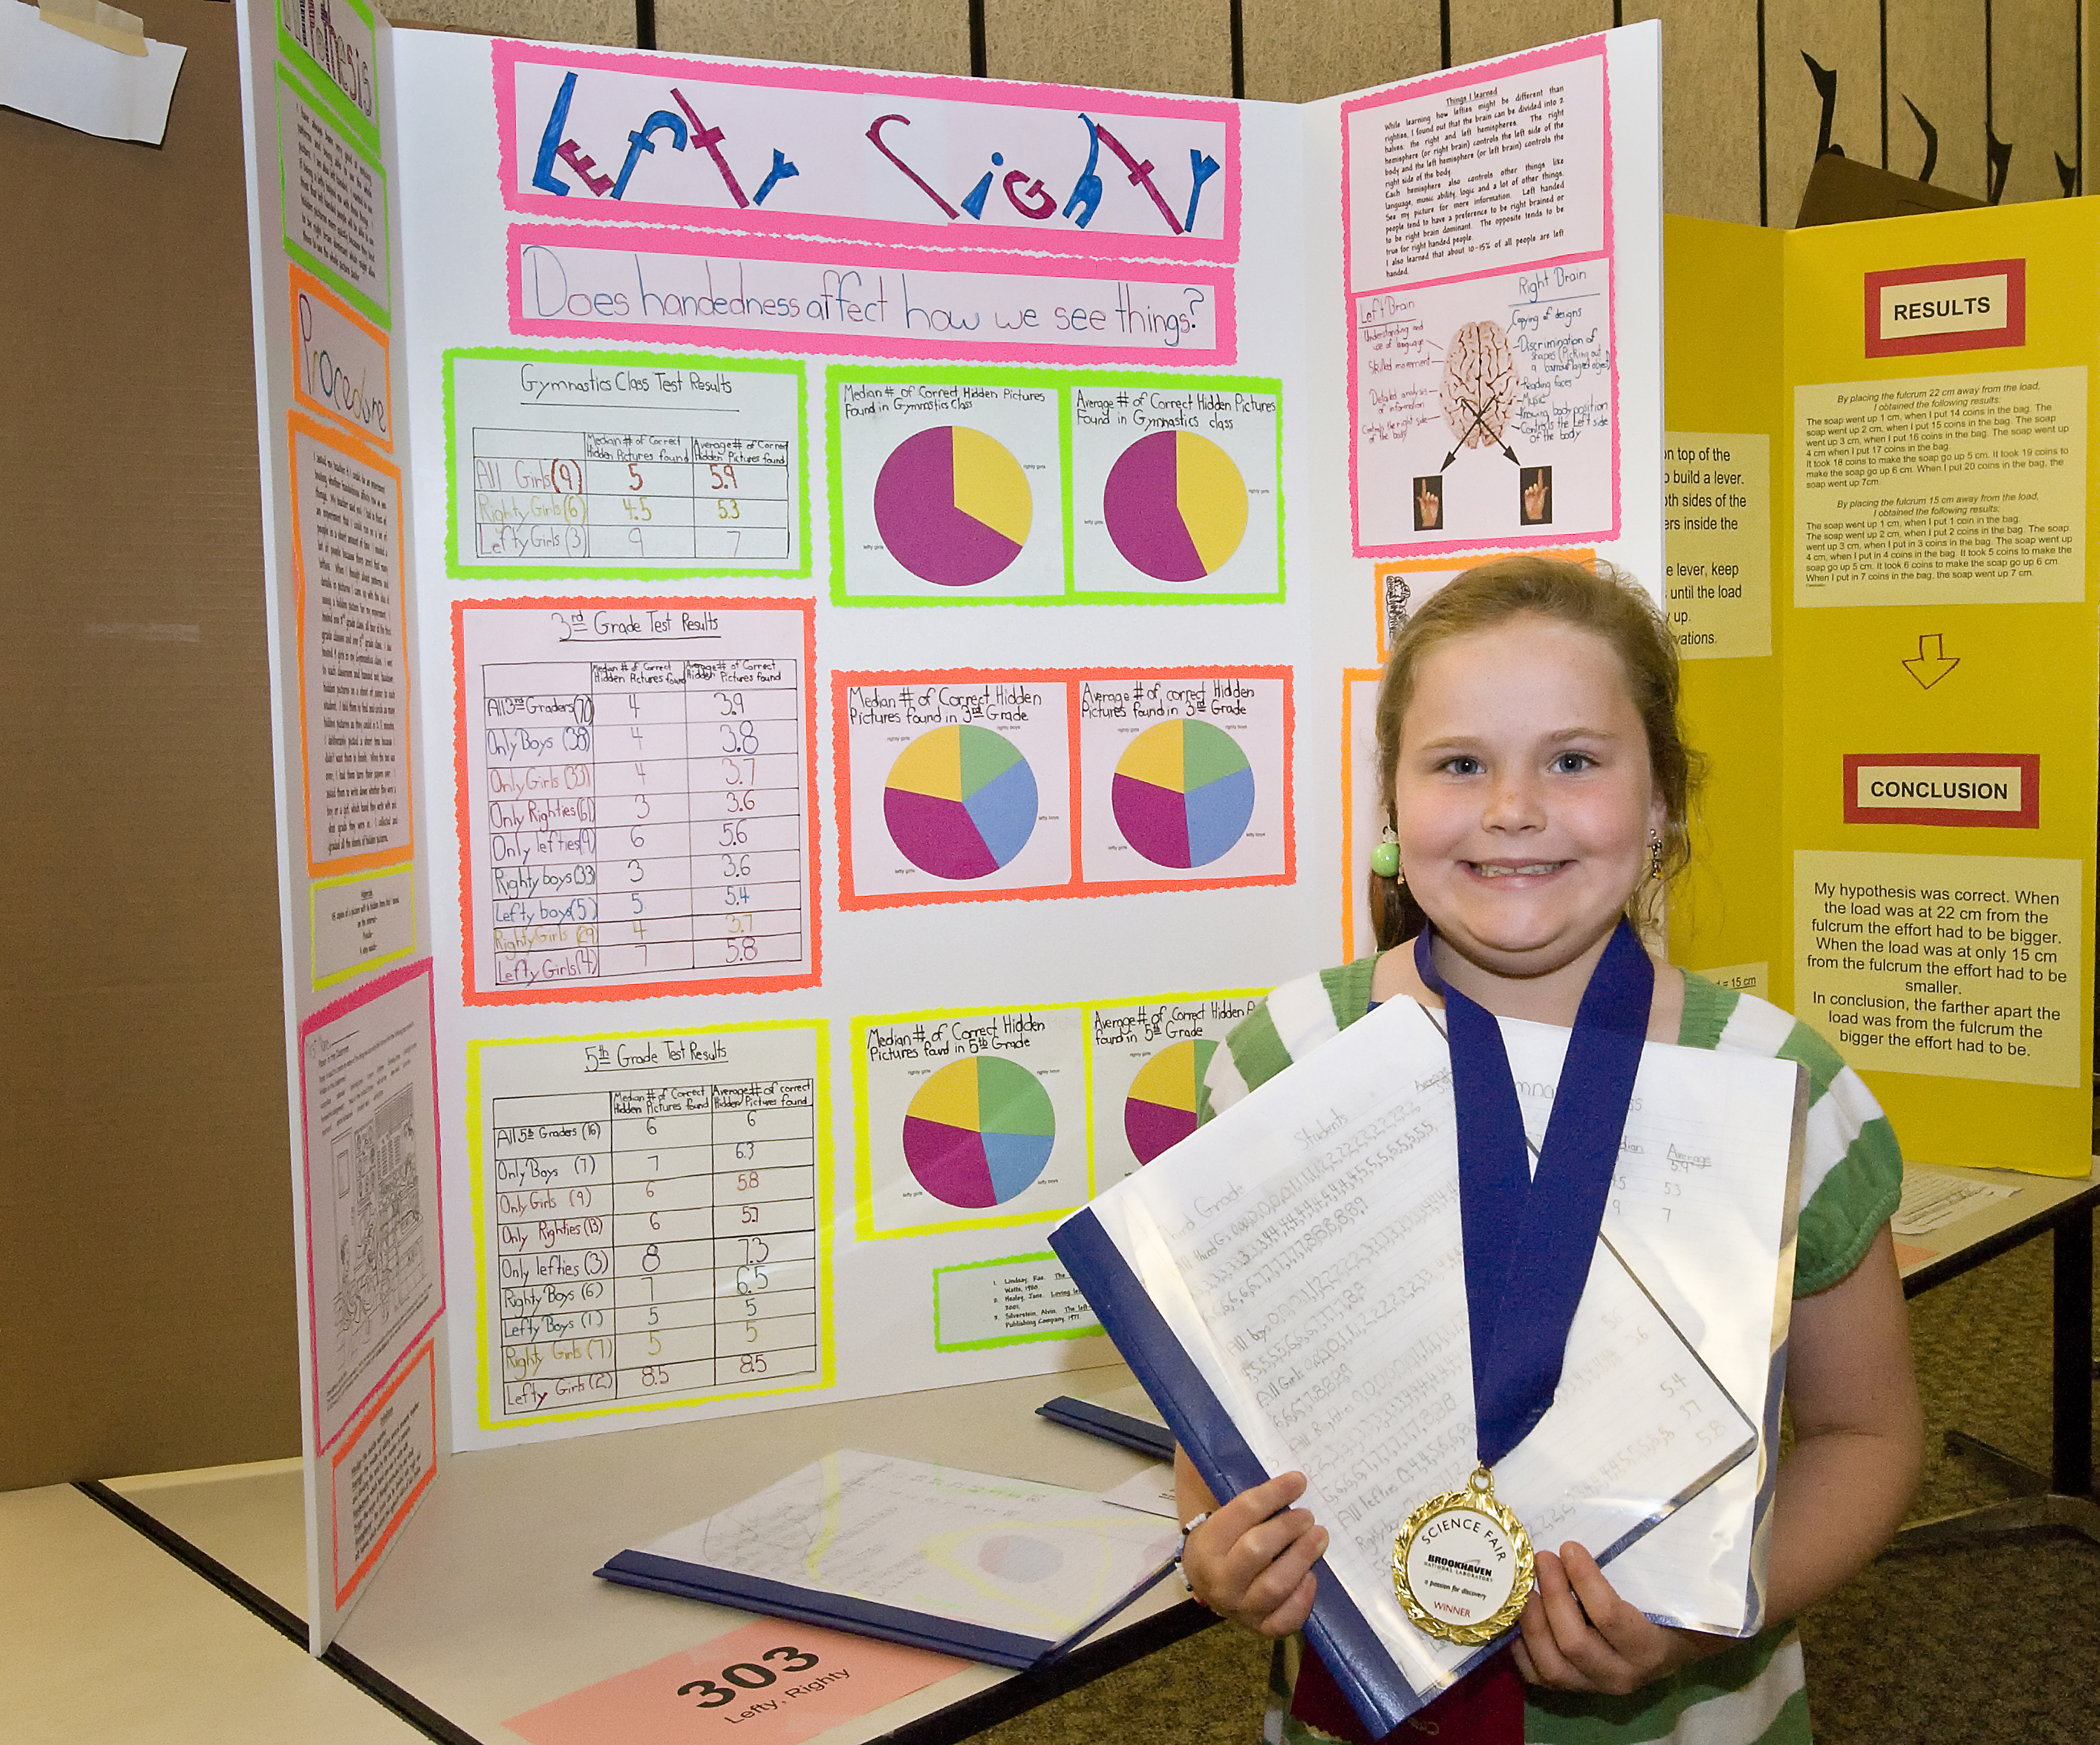 sixth grade science fair projects Are you looking for some easy science fair projects for 6th grade then your search ends here, as we have some of the easiest and fun science fair projects for middle.